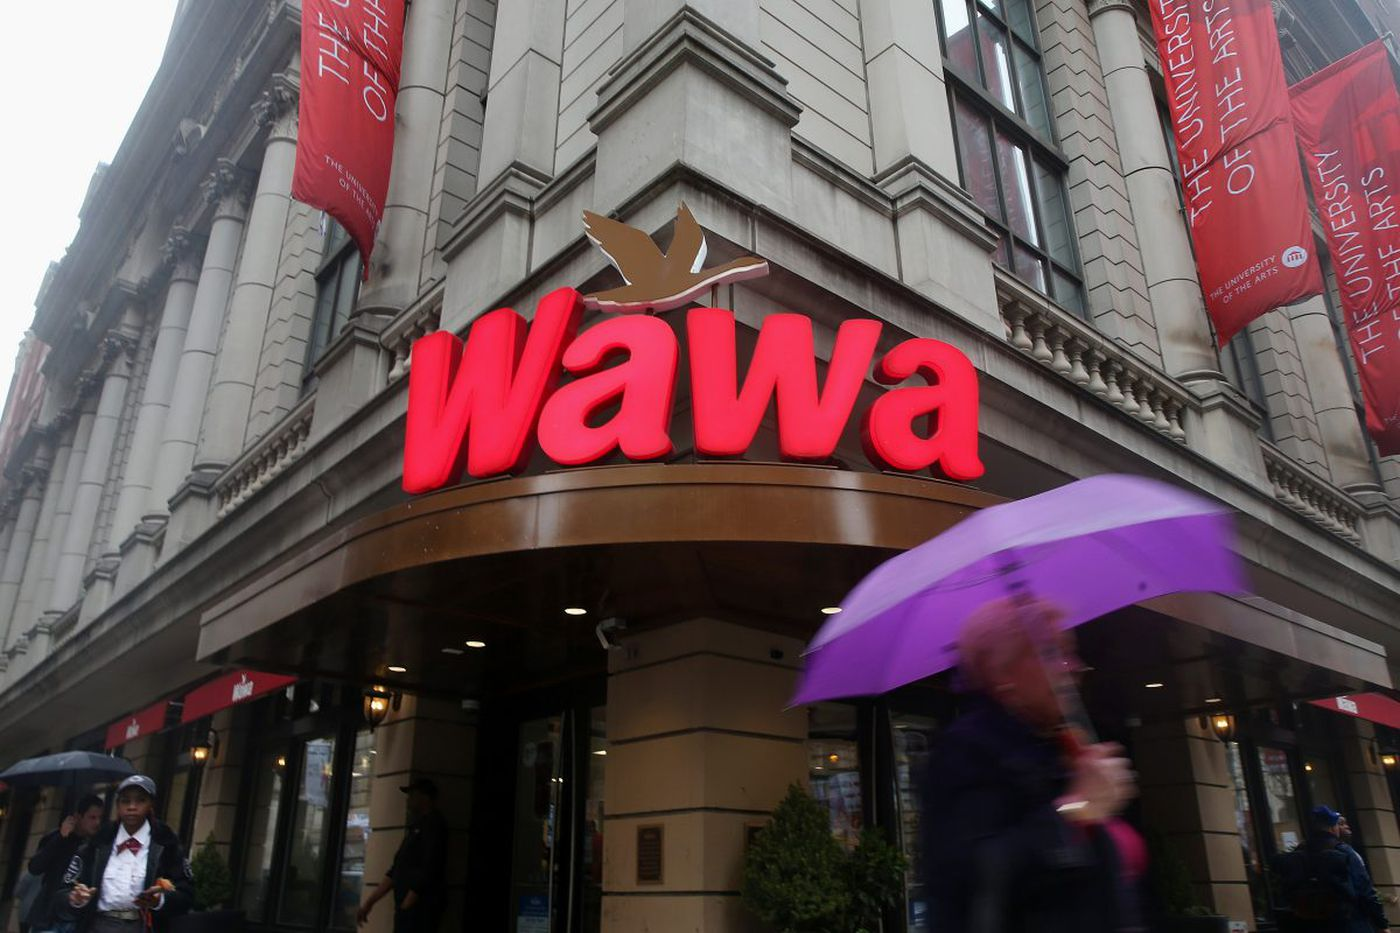 Wawa to pay $25 million to settle employee stock suit